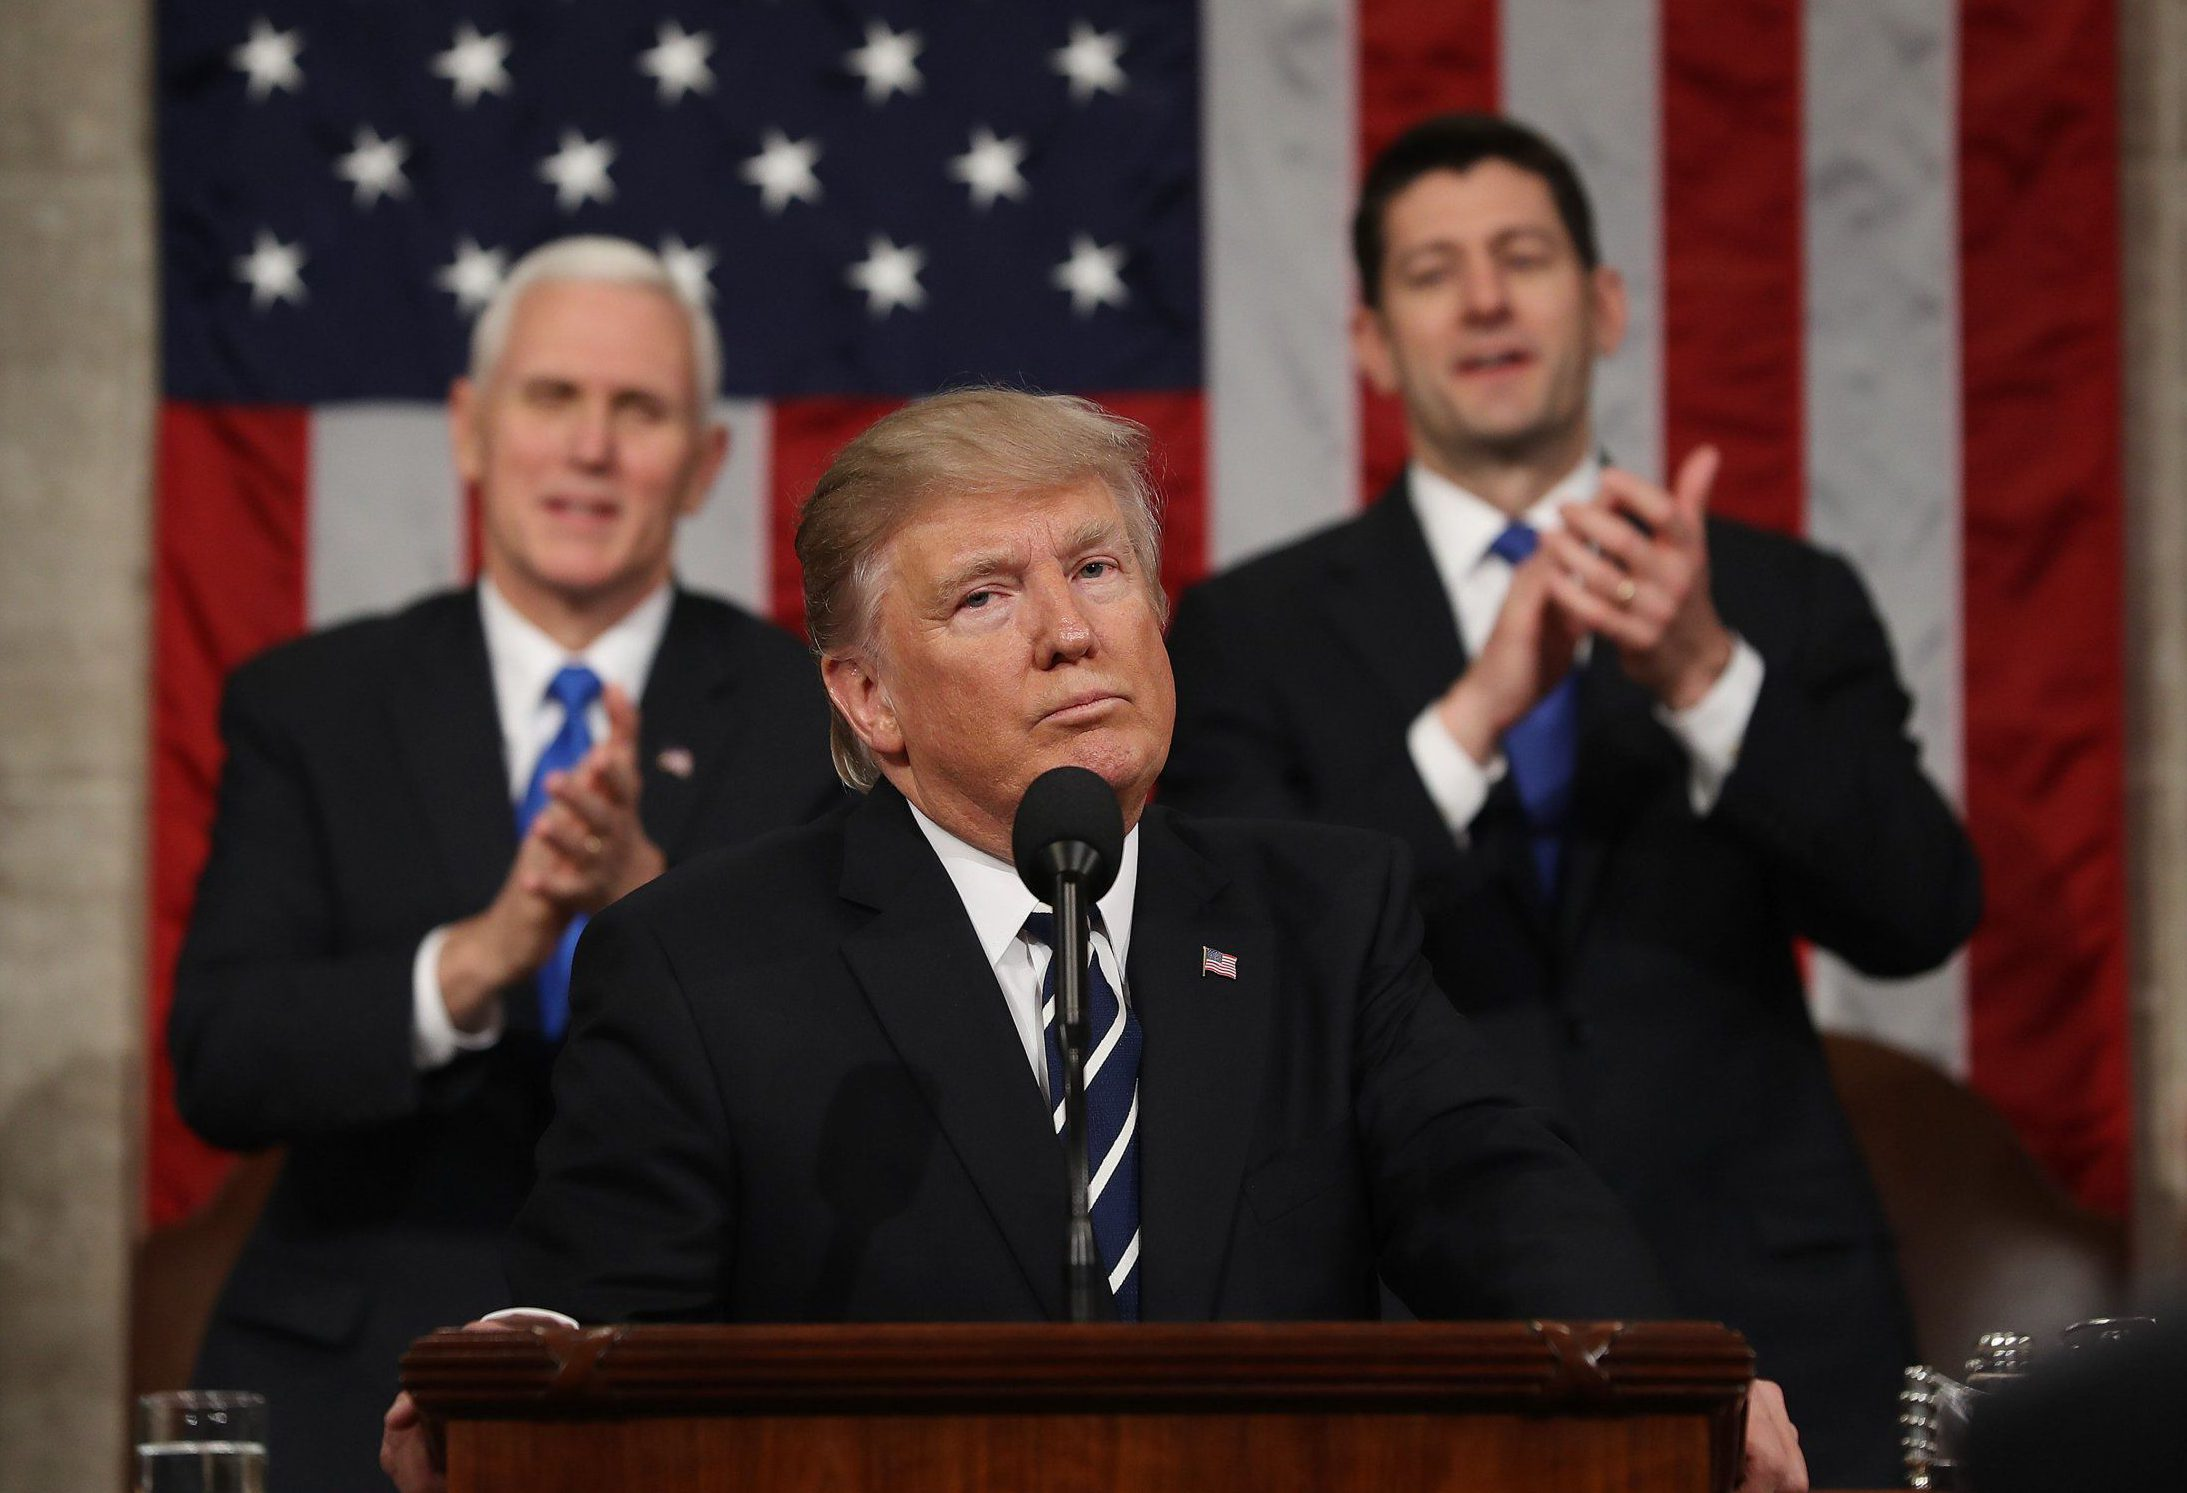 Mandatory Credit: Photo by REX/Shutterstock (8445216t) US President Donald J. Trump reacts after delivering his first address to a joint session of Congress from the floor of the House of Representatives President Donald Trump address Joint Session of Congress, Washington DC - 28 Feb 2017 Traditionally the first address to a joint session of Congress by a newly-elected president is not referred to as a State of the Union.